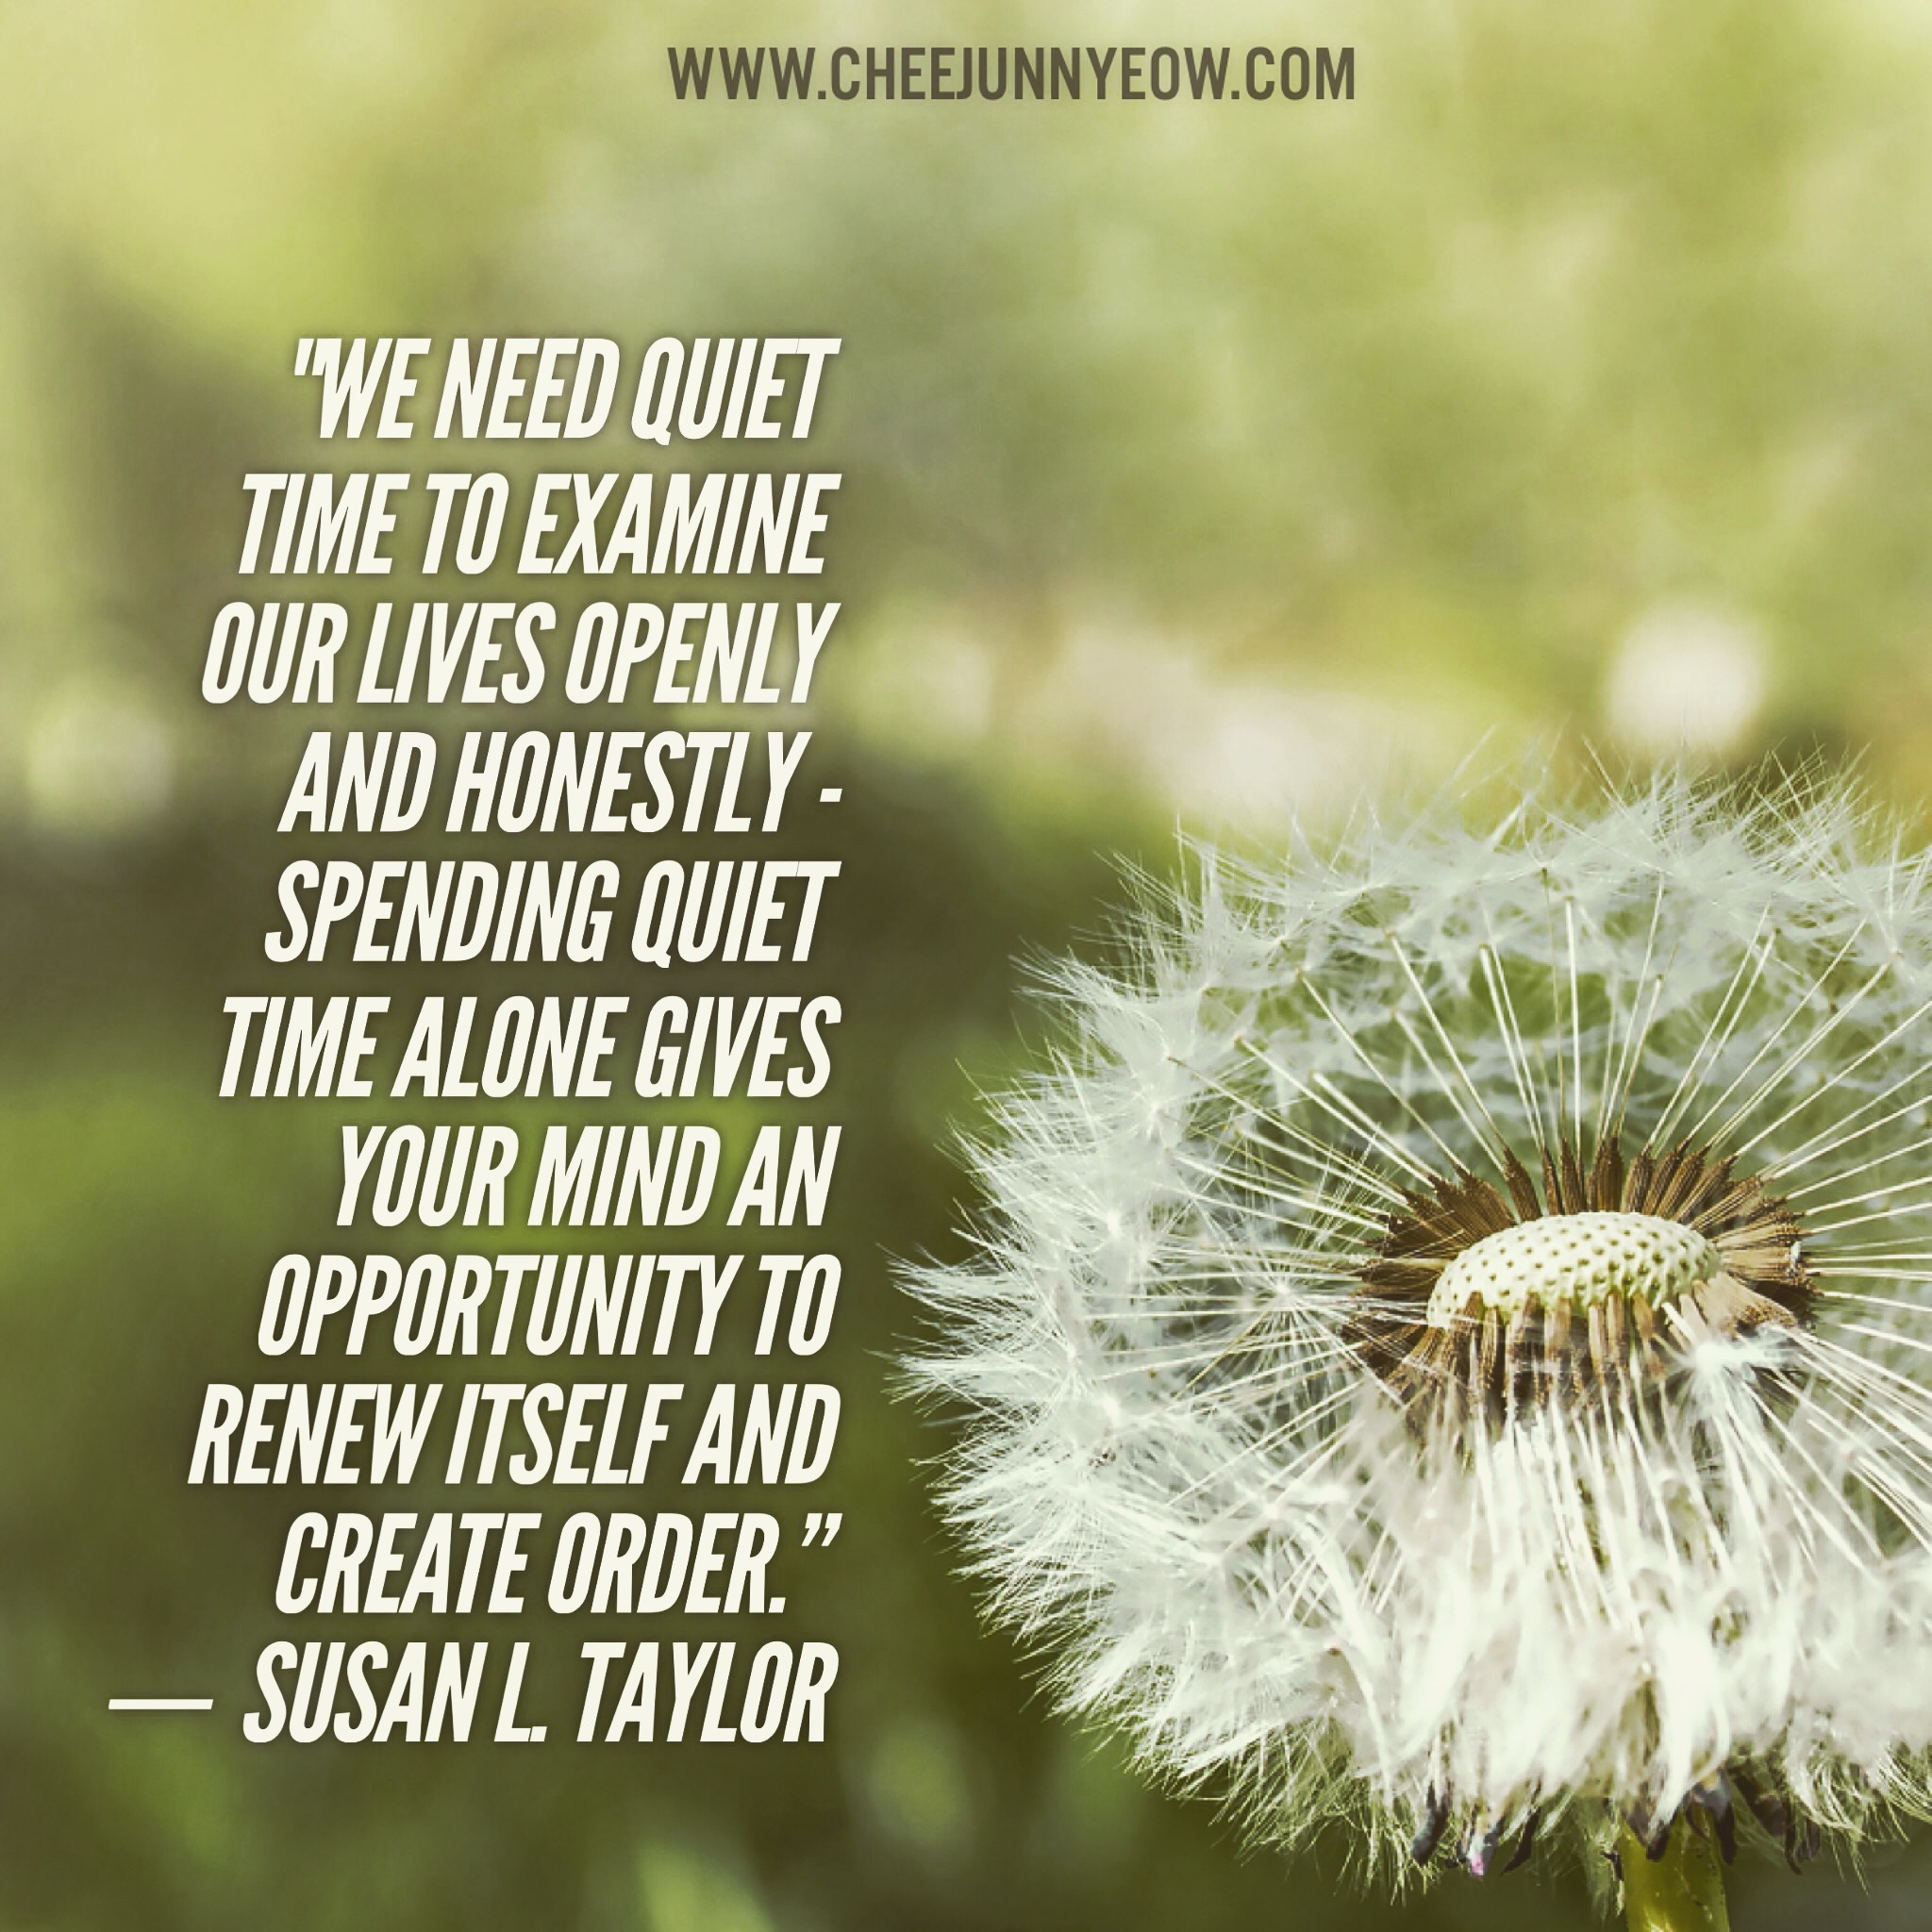 we need quiet time to examine our lives openly and honestly. spending quiet time alone gives your mind an opportunity to renew itself and create order